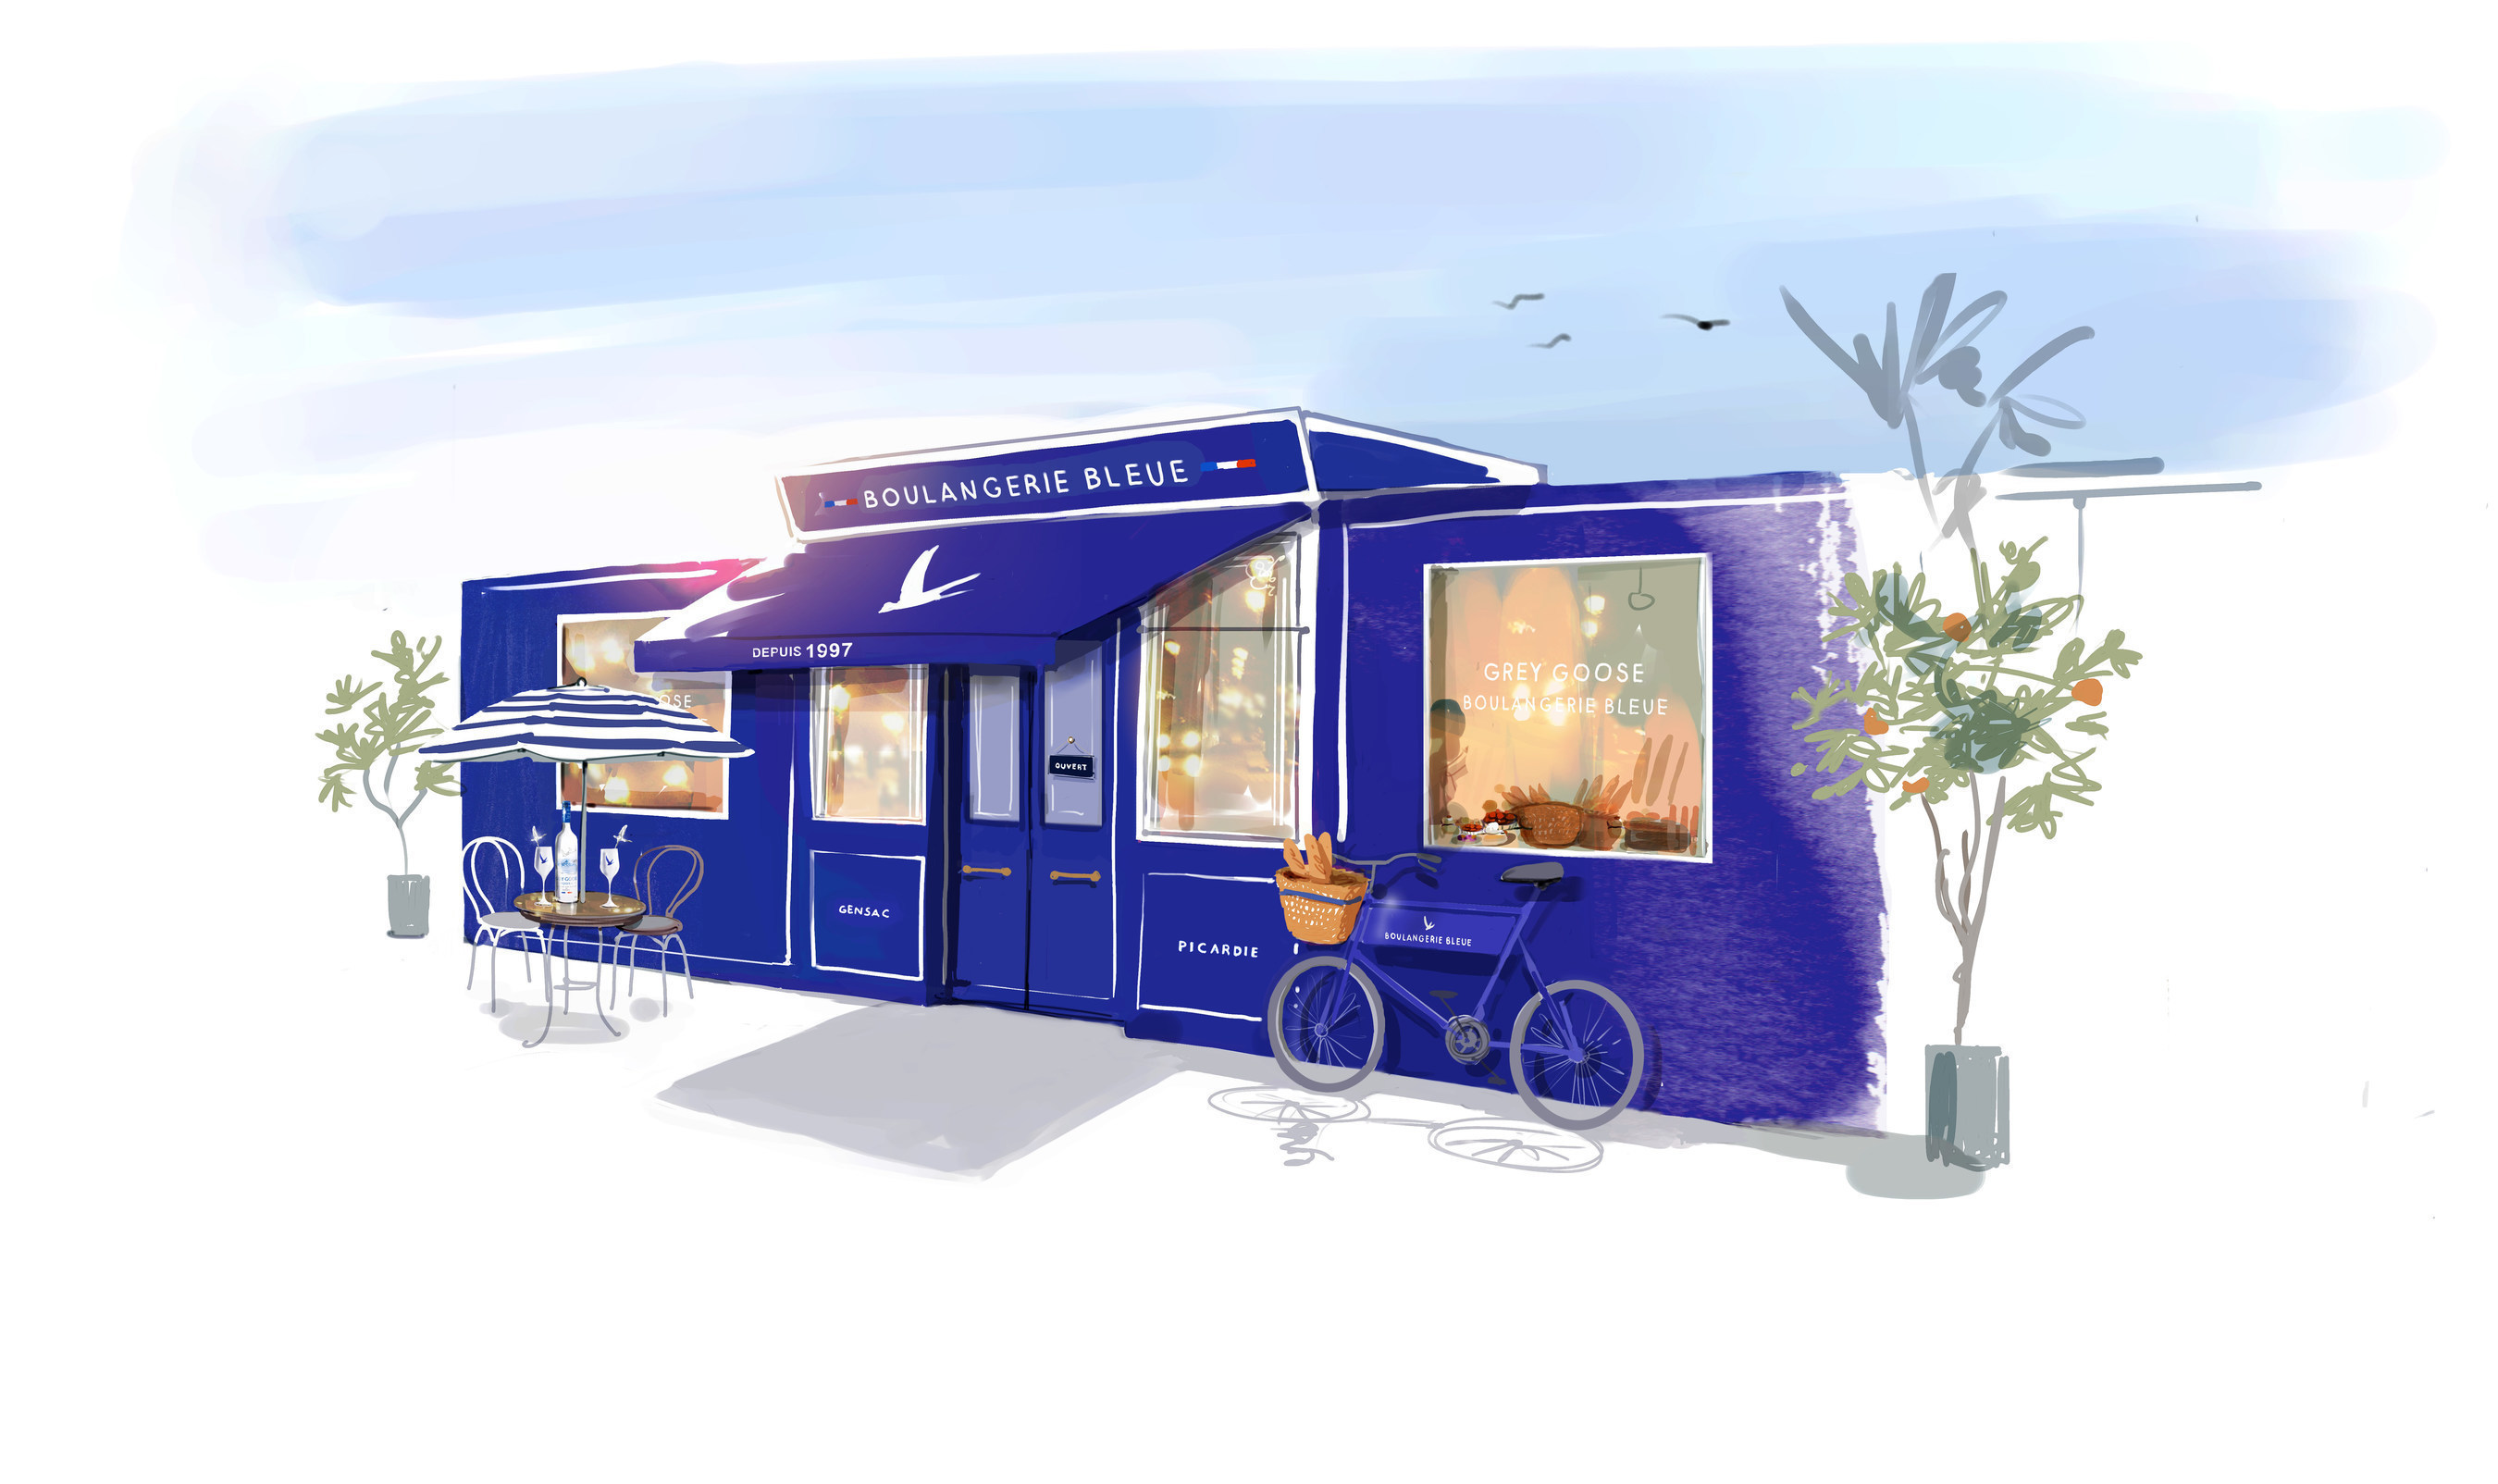 GREY GOOSE® Vodka Brings A Taste Of The French Riviera To